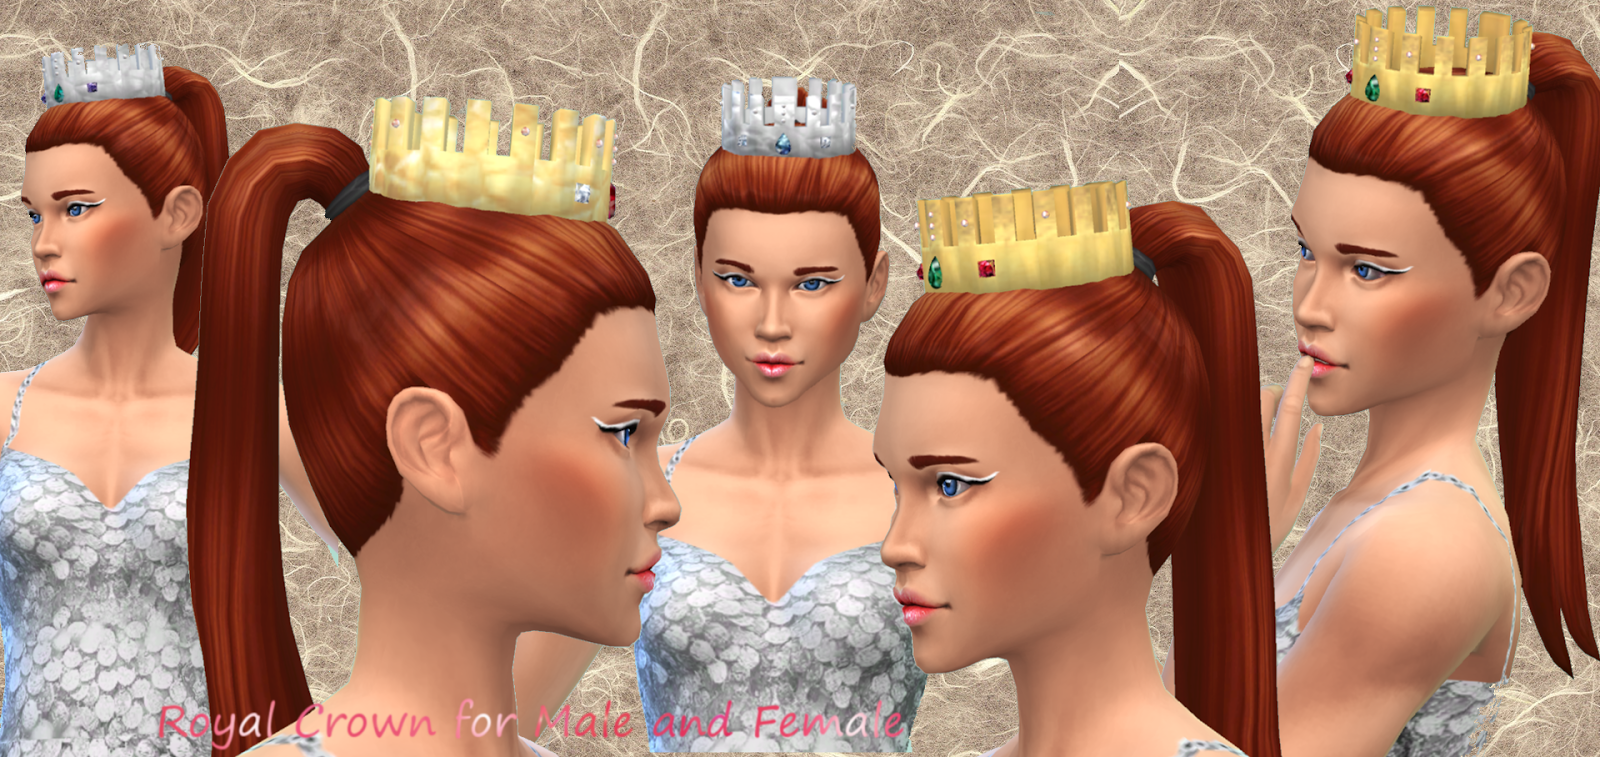 Royal Crown for Males & Females by Mythical Dream Sims 4